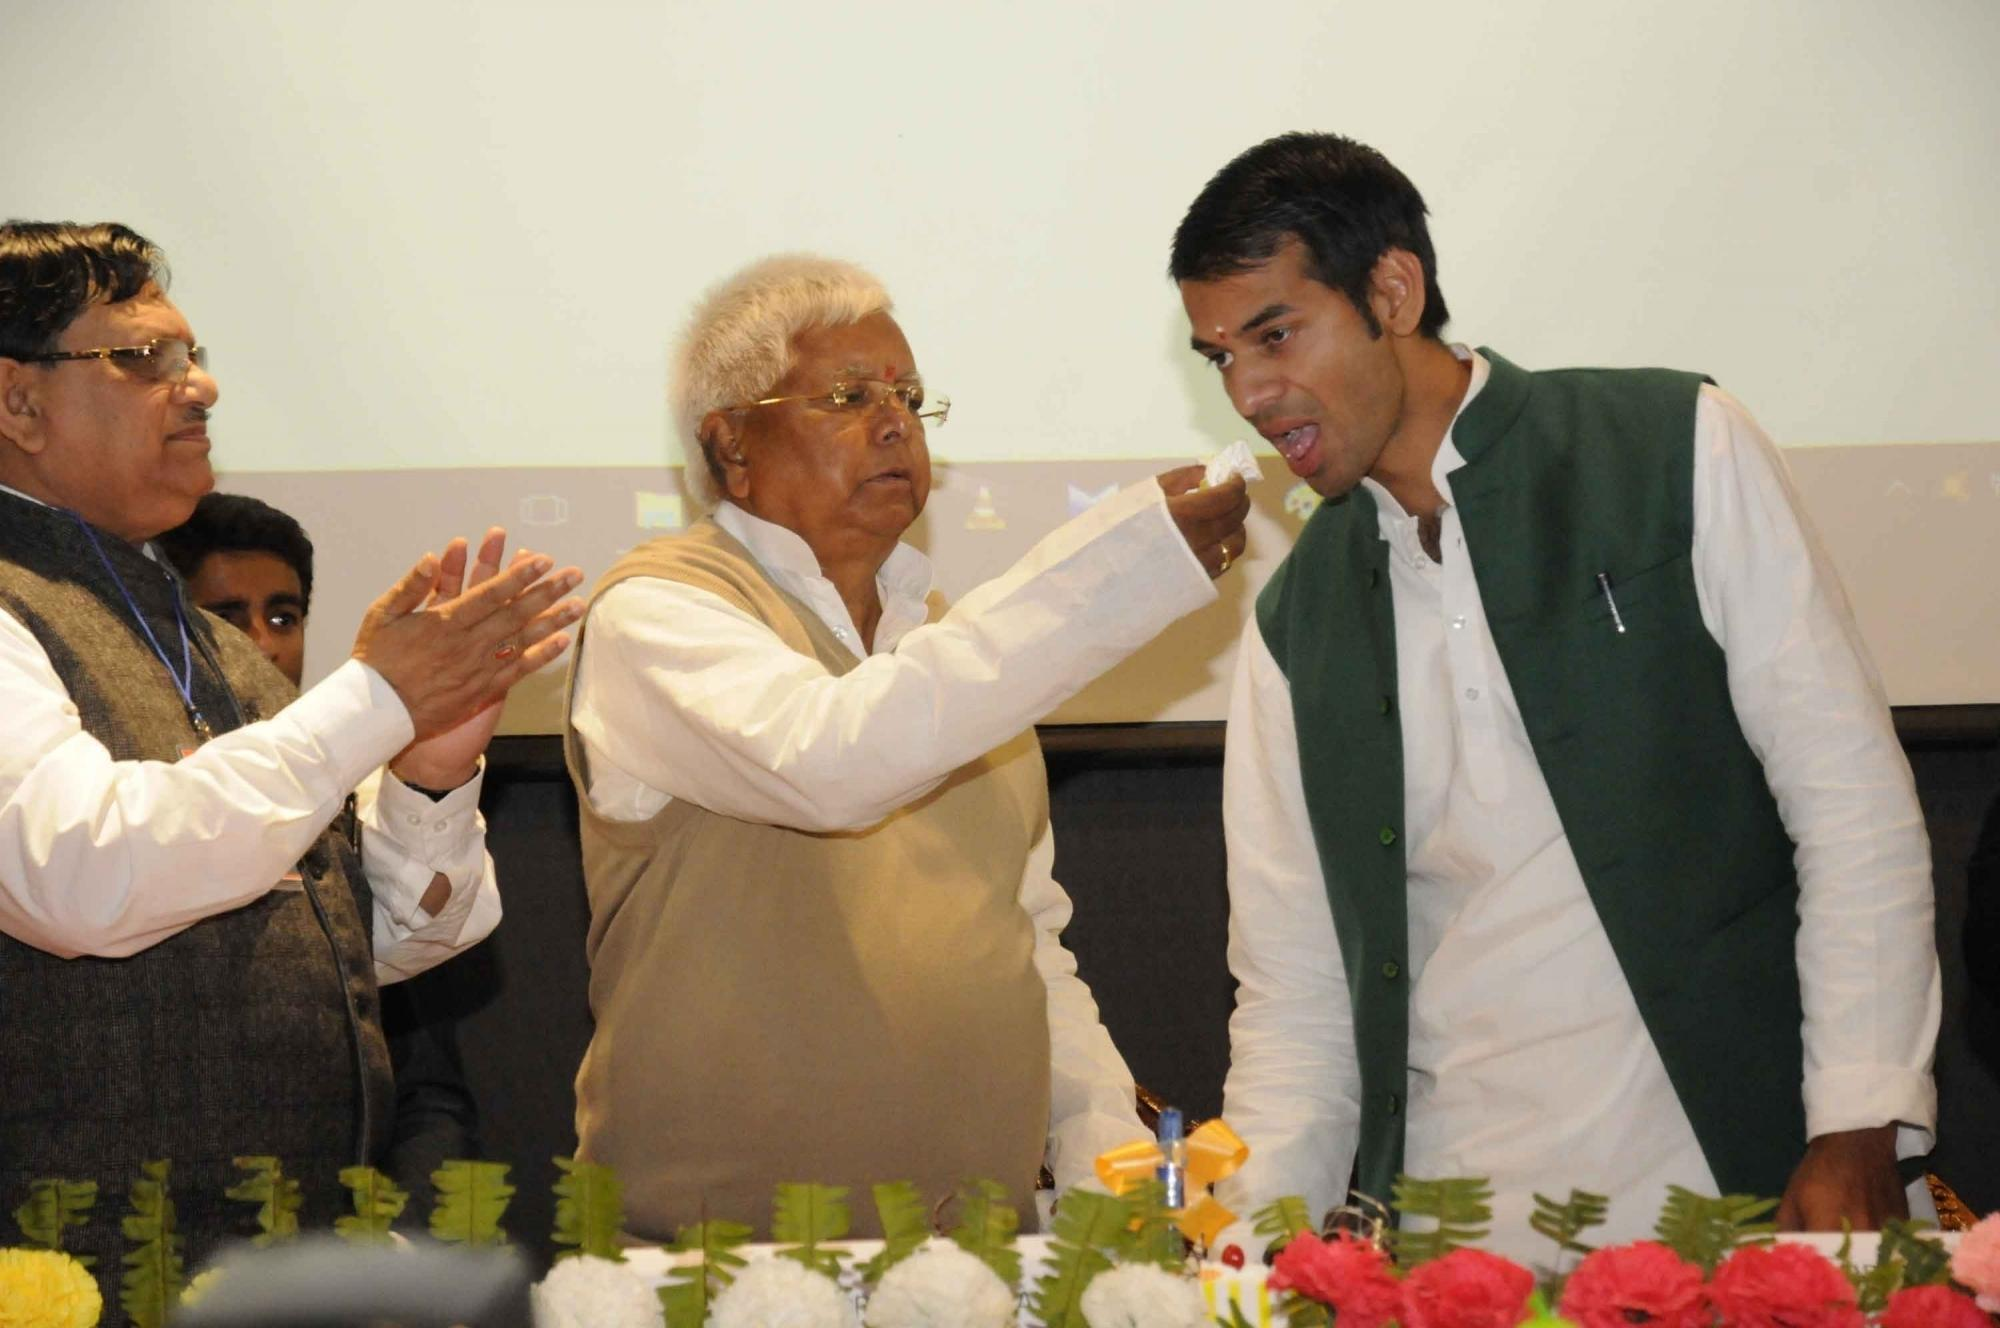 Rashtriya Janata Dal chief Lalu Prasad Yadav and Bihar Health Minister Tej Pratap Yadav during a programme at Indira Gandhi Institute of Medical Sciences in Patna. Photo Credit: IANS